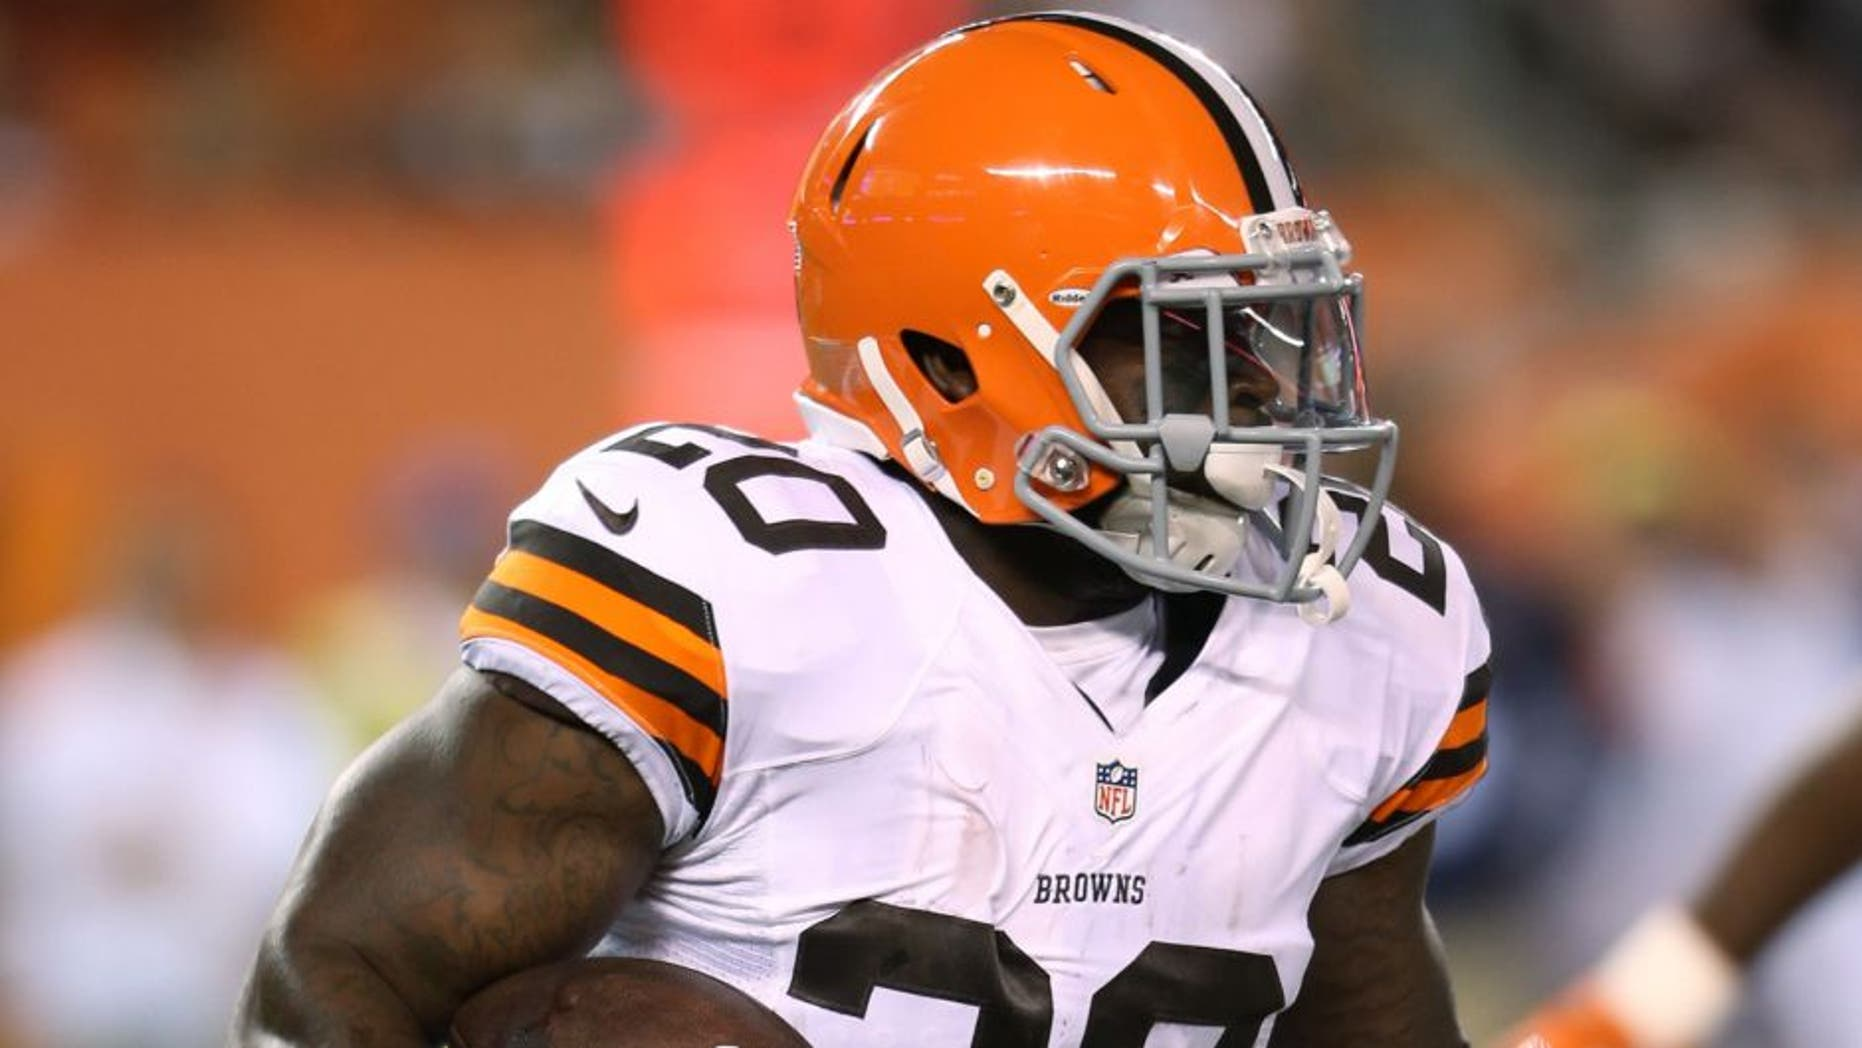 Aug 28, 2014; Cleveland, OH, USA; Cleveland Browns running back Terrance West (20) runs against Chicago Bears during the second quarter at FirstEnergy Stadium. Mandatory Credit: Ron Schwane-USA TODAY Sports